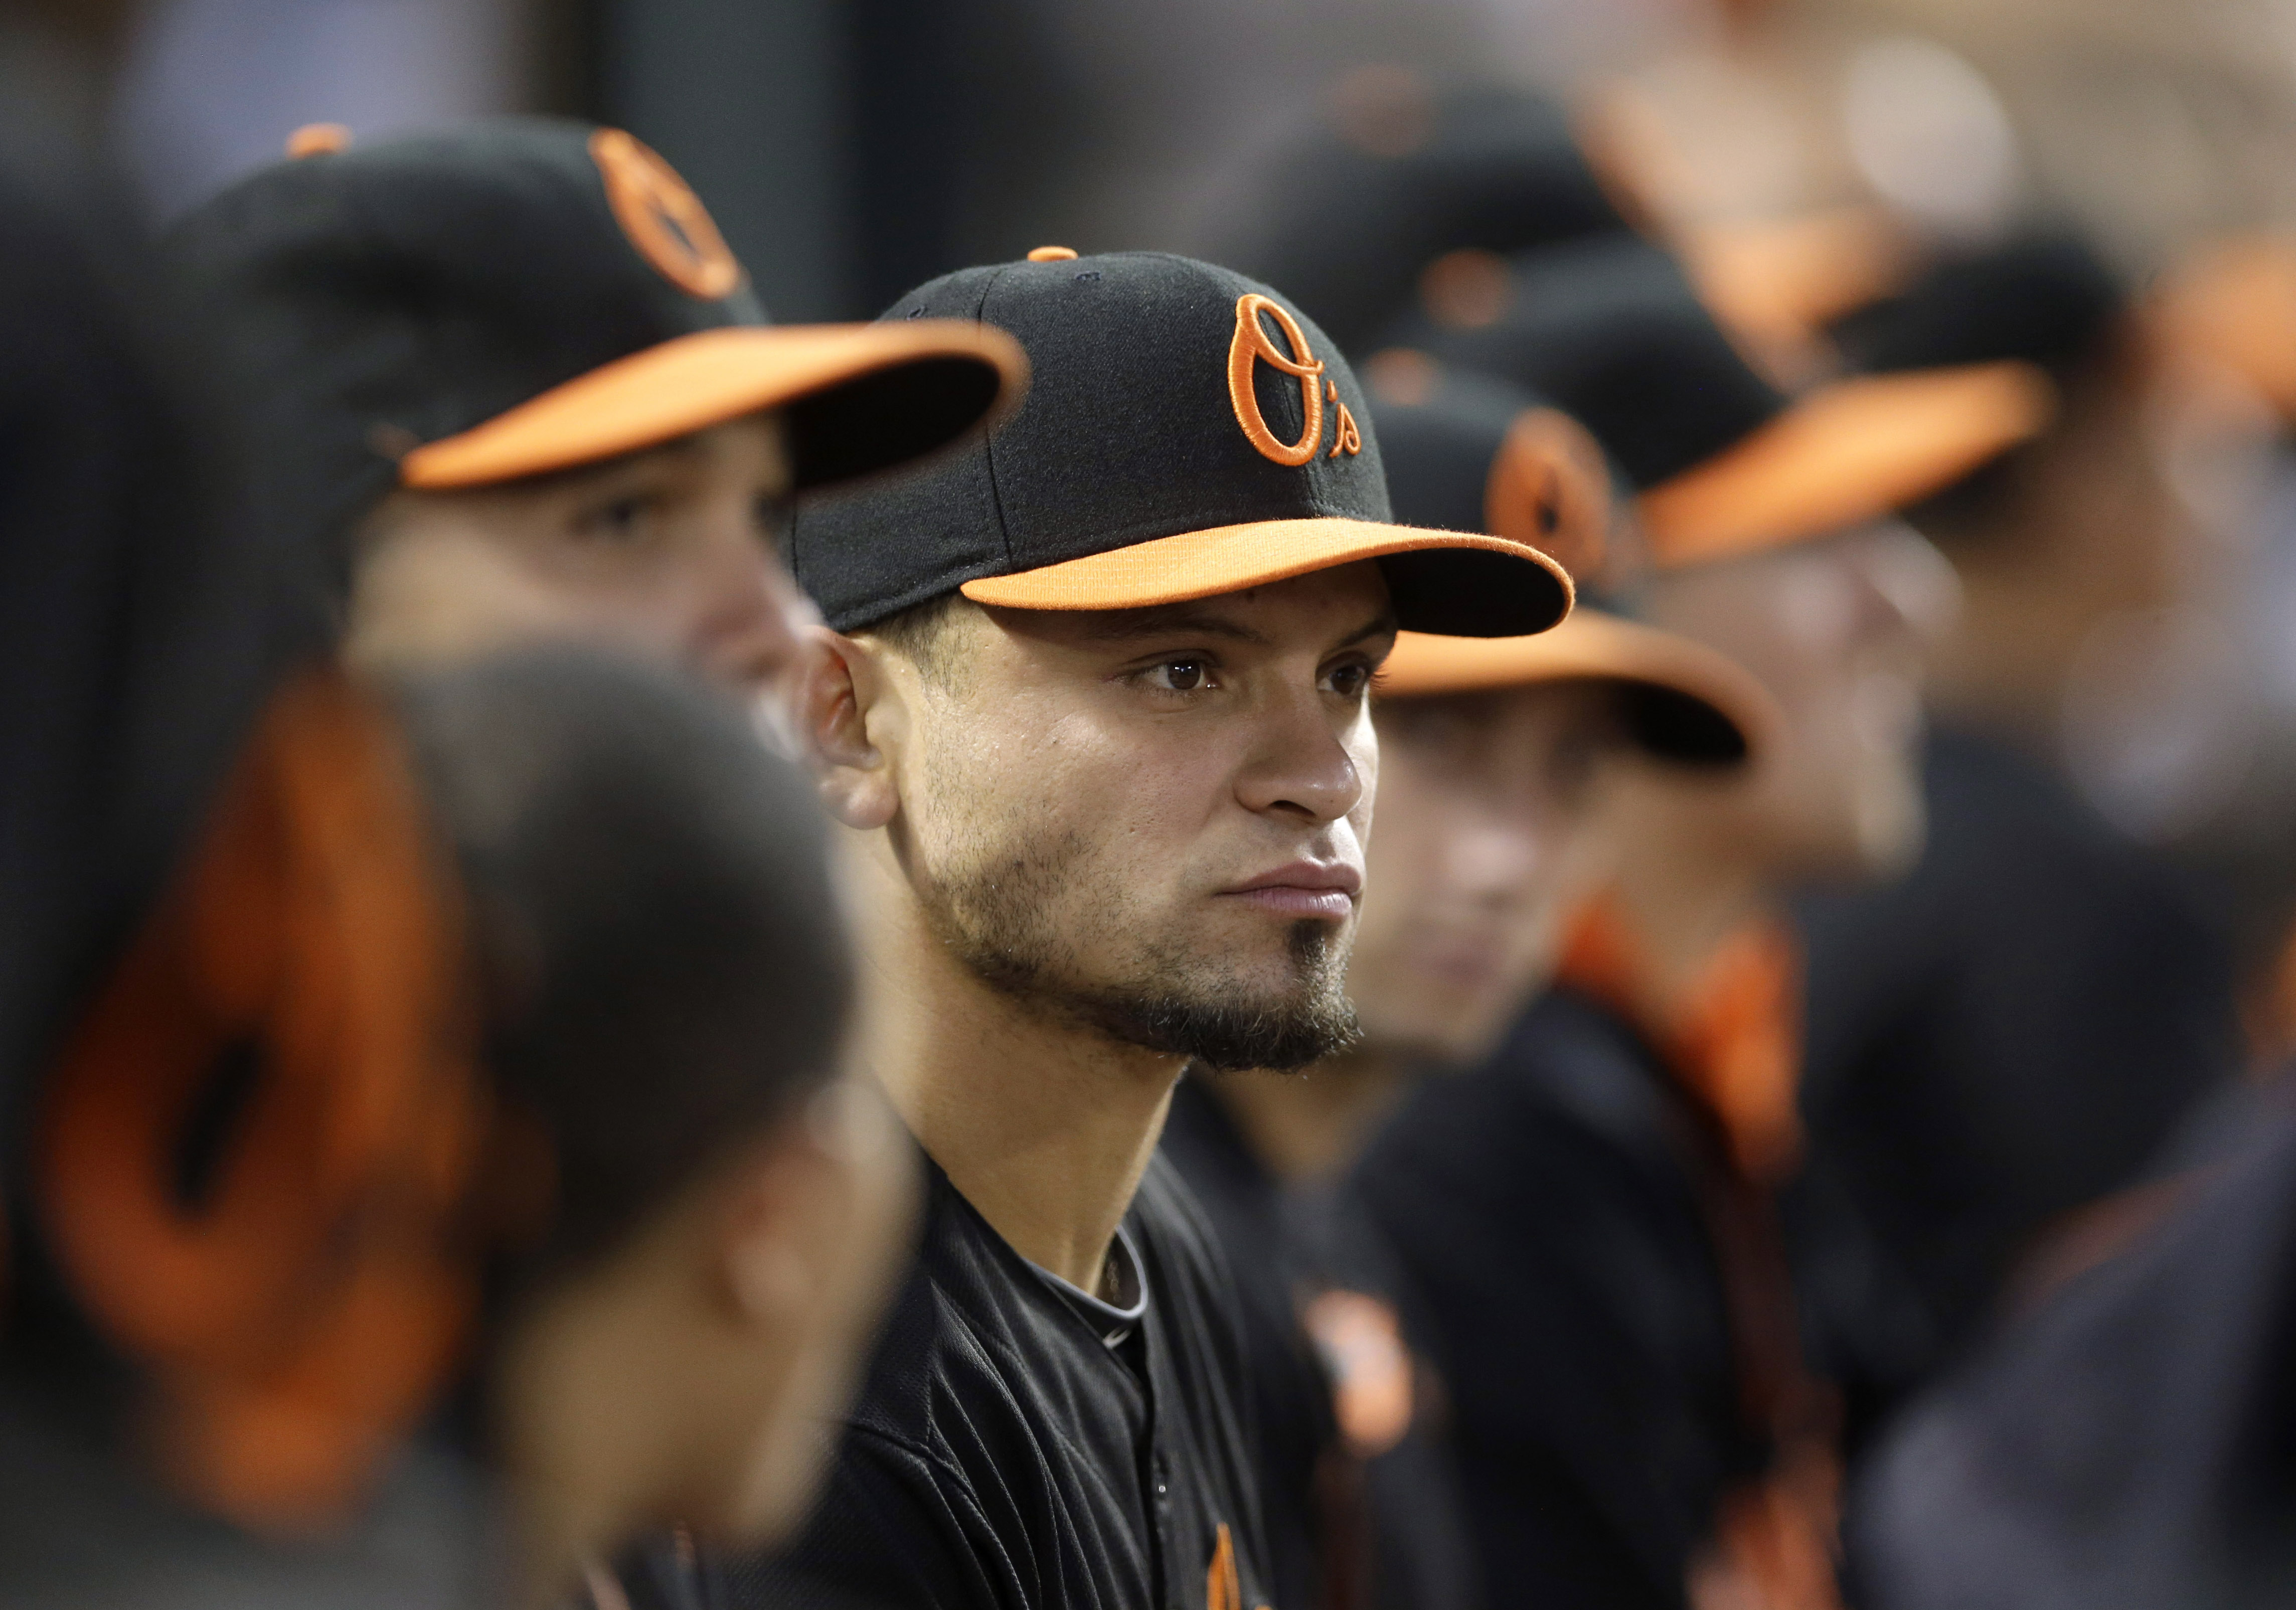 Baltimore Orioles' Gerardo Parra sits in the dugout in the fourth inning of a baseball game against the Detroit Tigers, Friday, July 31, 2015, in Baltimore. Parra was acquired Friday in a trade with the Milwaukee Brewers. (AP Photo/Patrick Semansky)